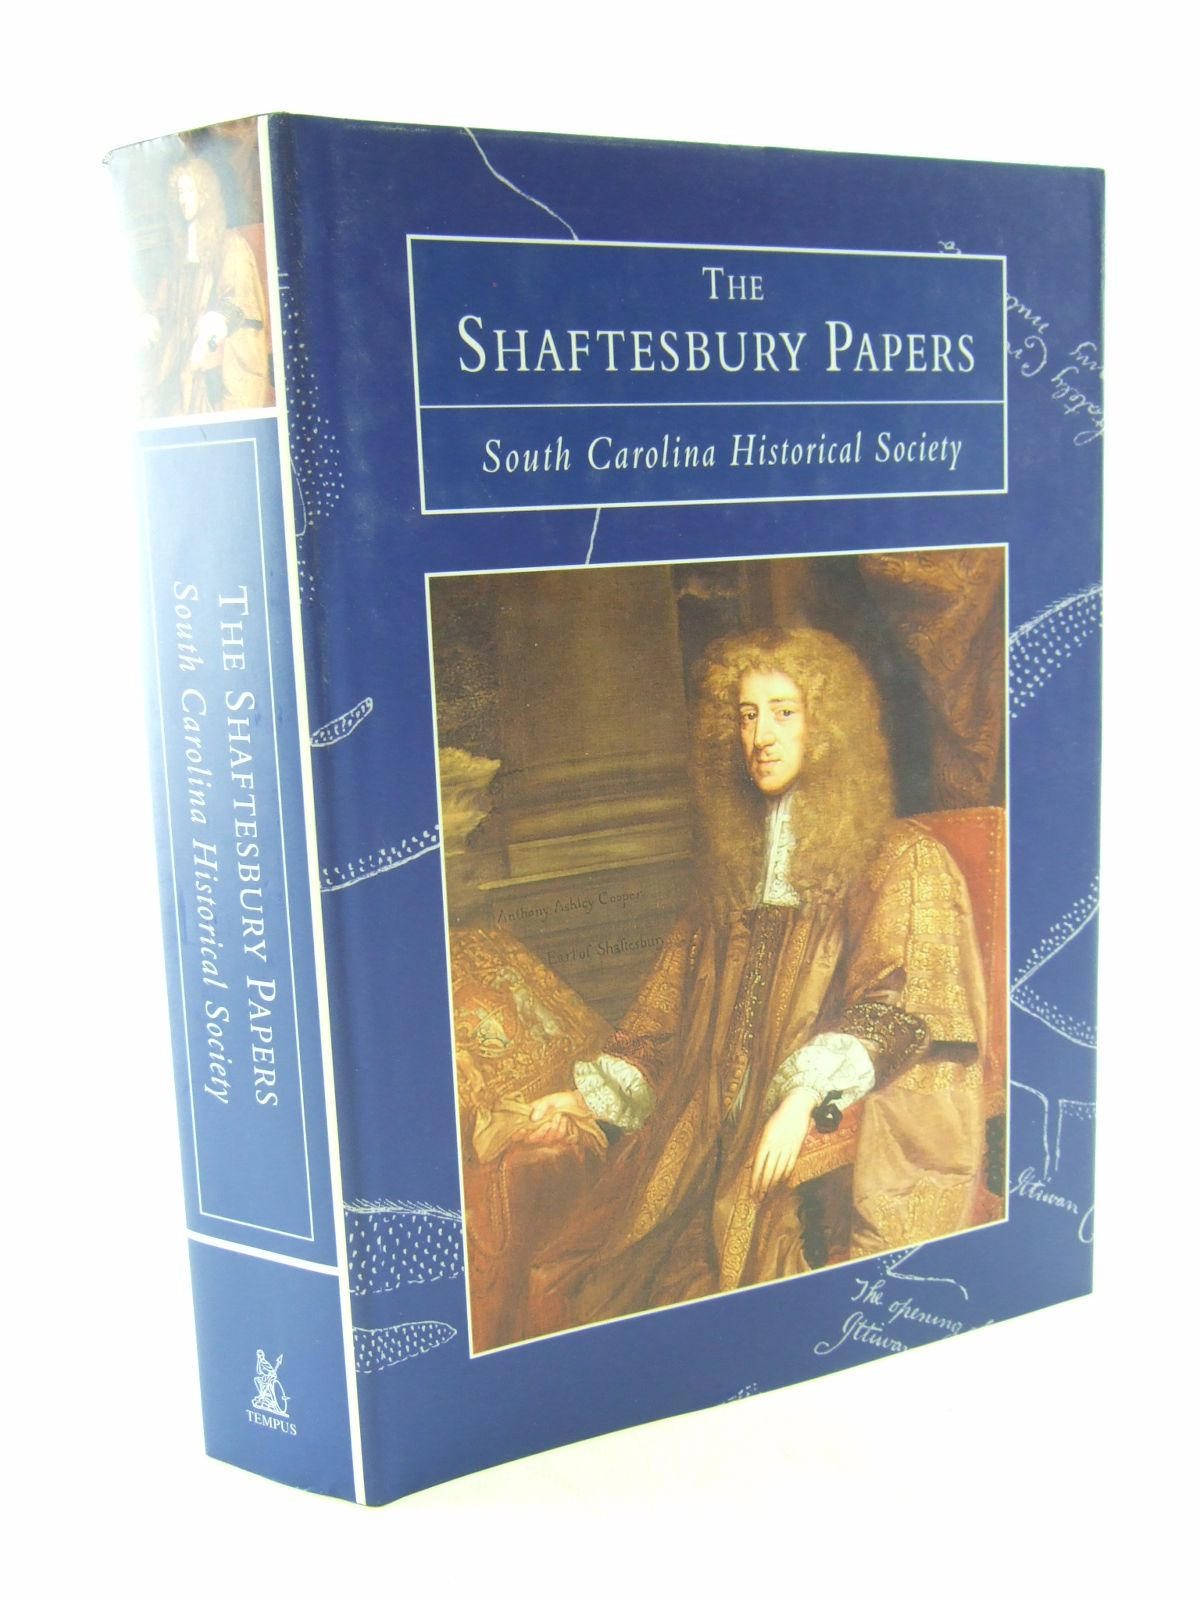 Photo of THE SHAFTESBURY PAPERS SOUTH CAROLINA HISTORICAL SOCIETY published by Tempus (STOCK CODE: 1805926)  for sale by Stella & Rose's Books